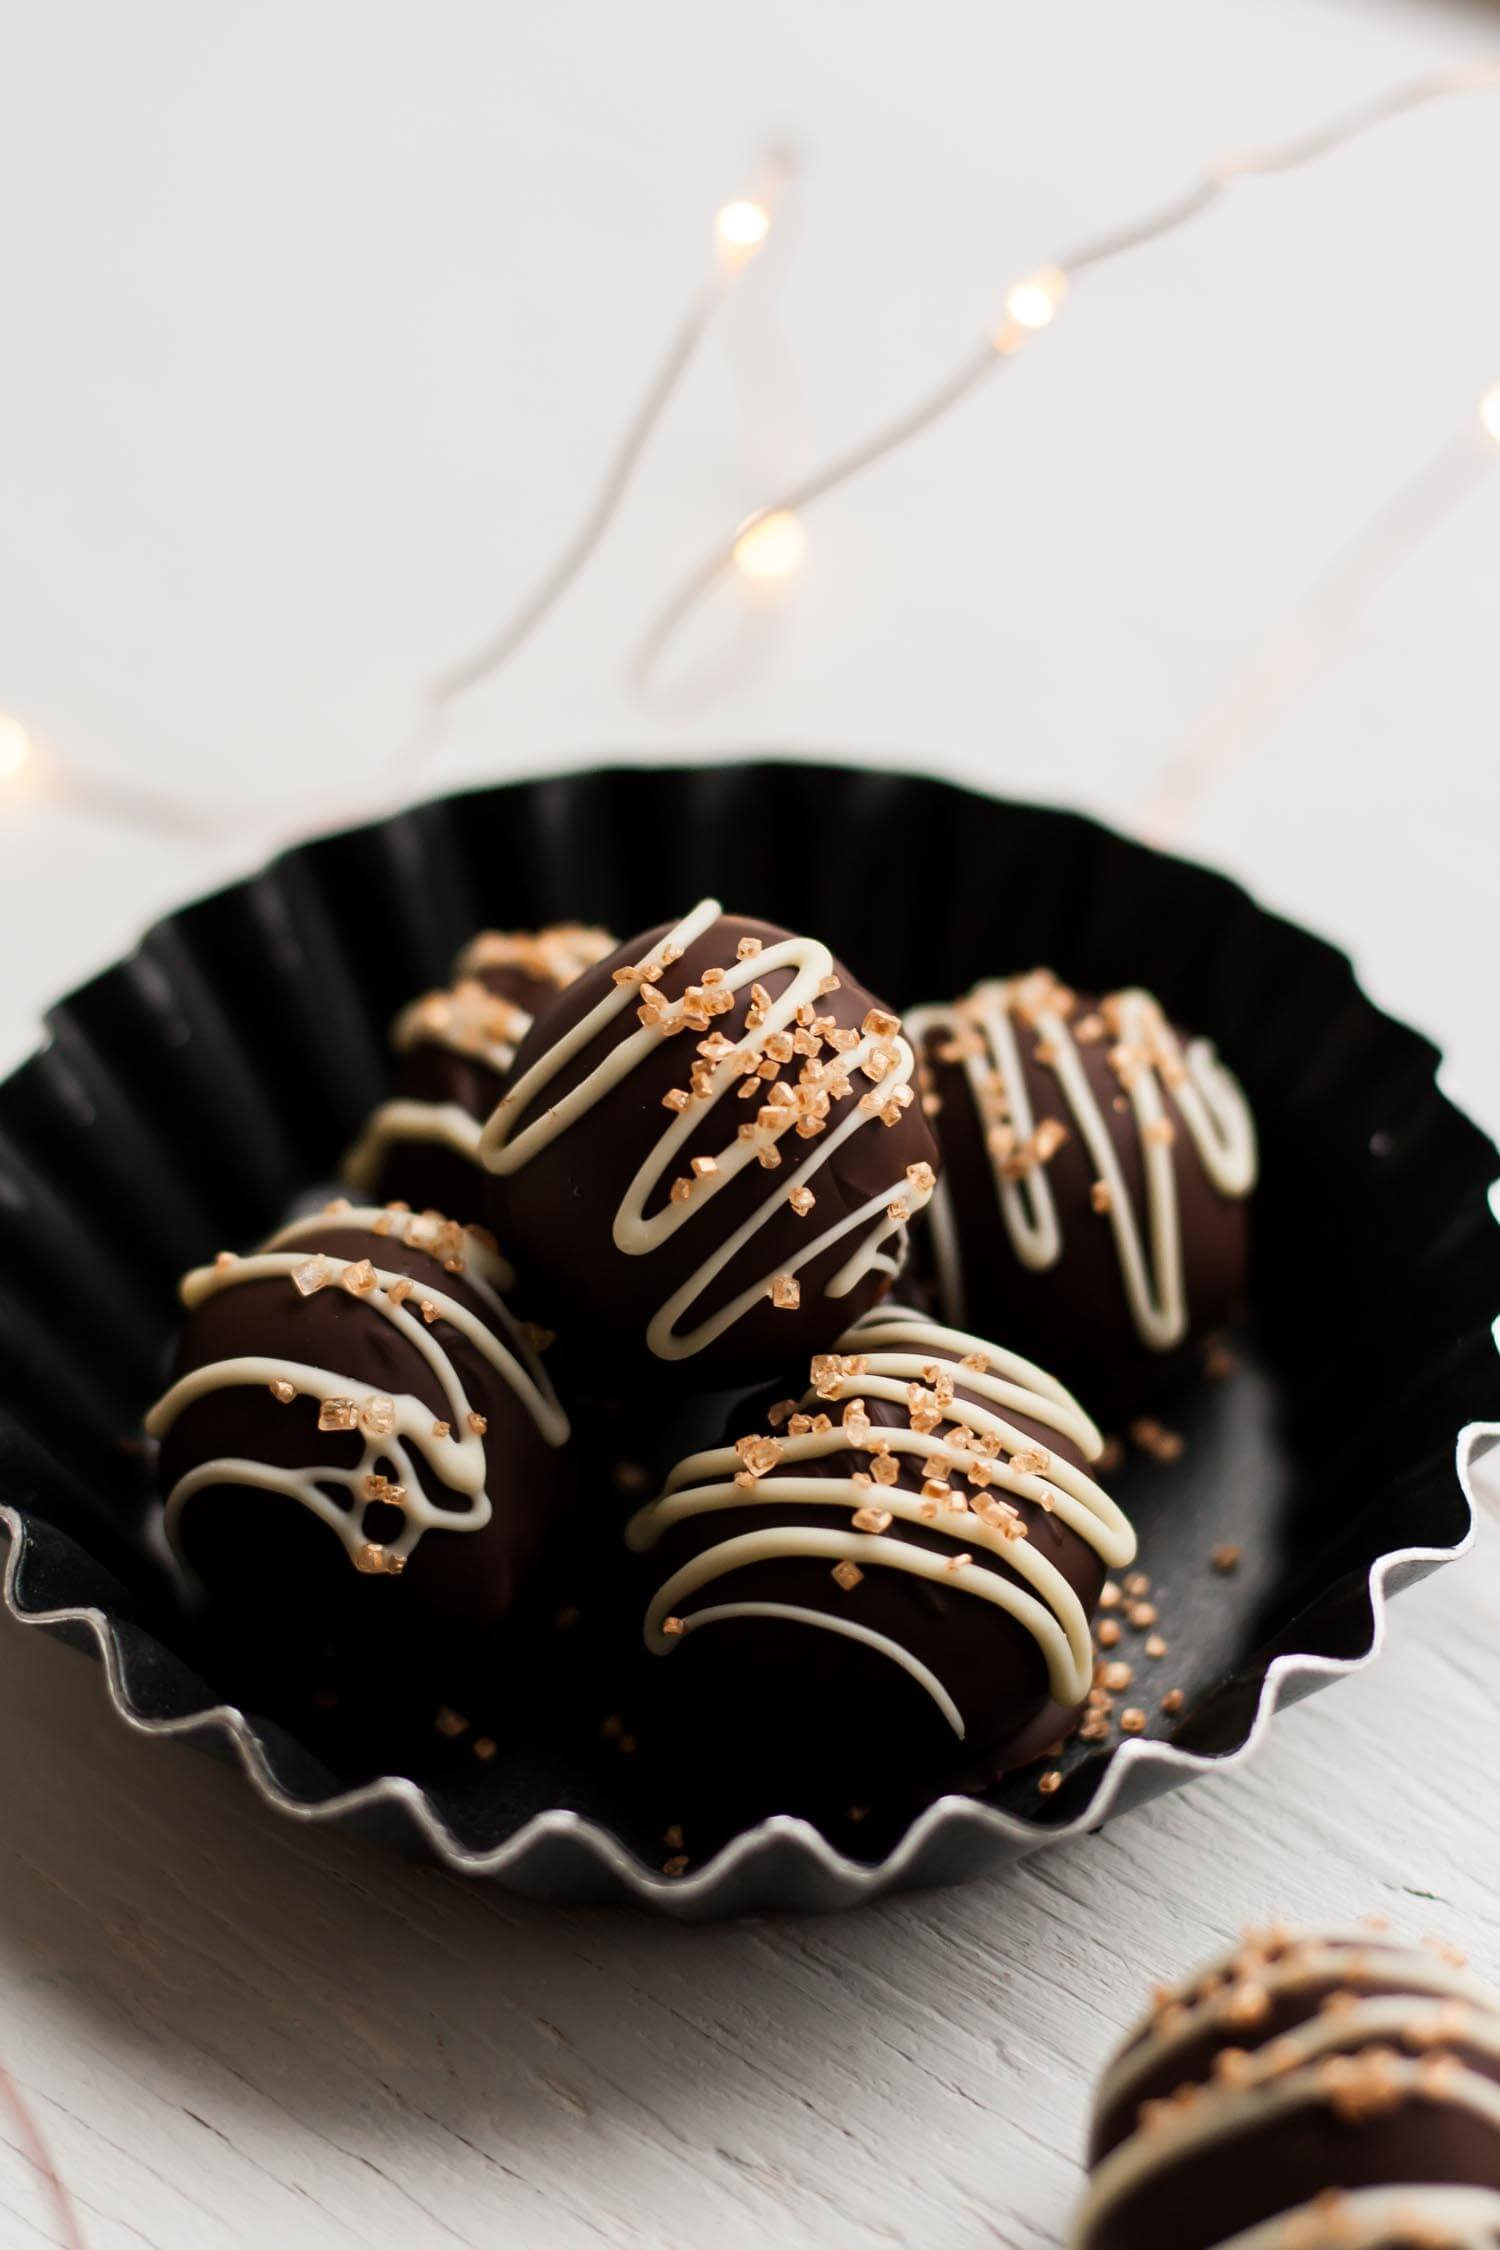 White Chocolate Nutmeg Truffles - these indulgent truffles are spiced with that wonderful festive spice, nutmeg. They would make the perfect edible gift! | eatloveeats.com